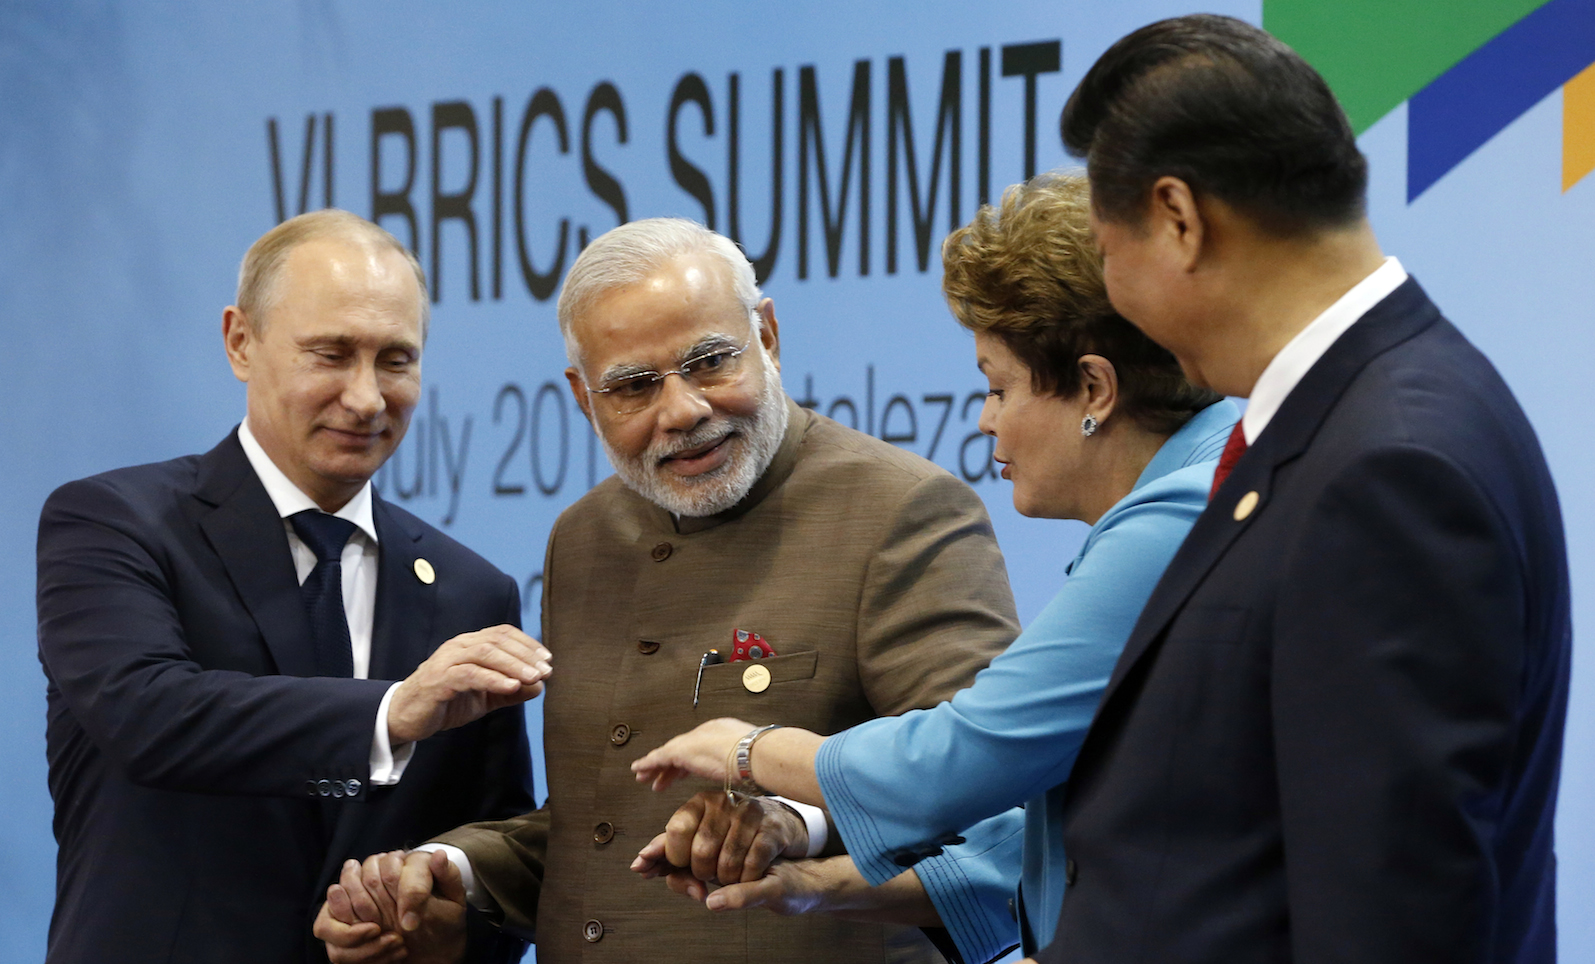 Russia's President Vladimir Putin, India's Prime Minister Narendra Modi, Brazil's President Dilma Rousseff and China's President Xi Jinping pose for a group picture.